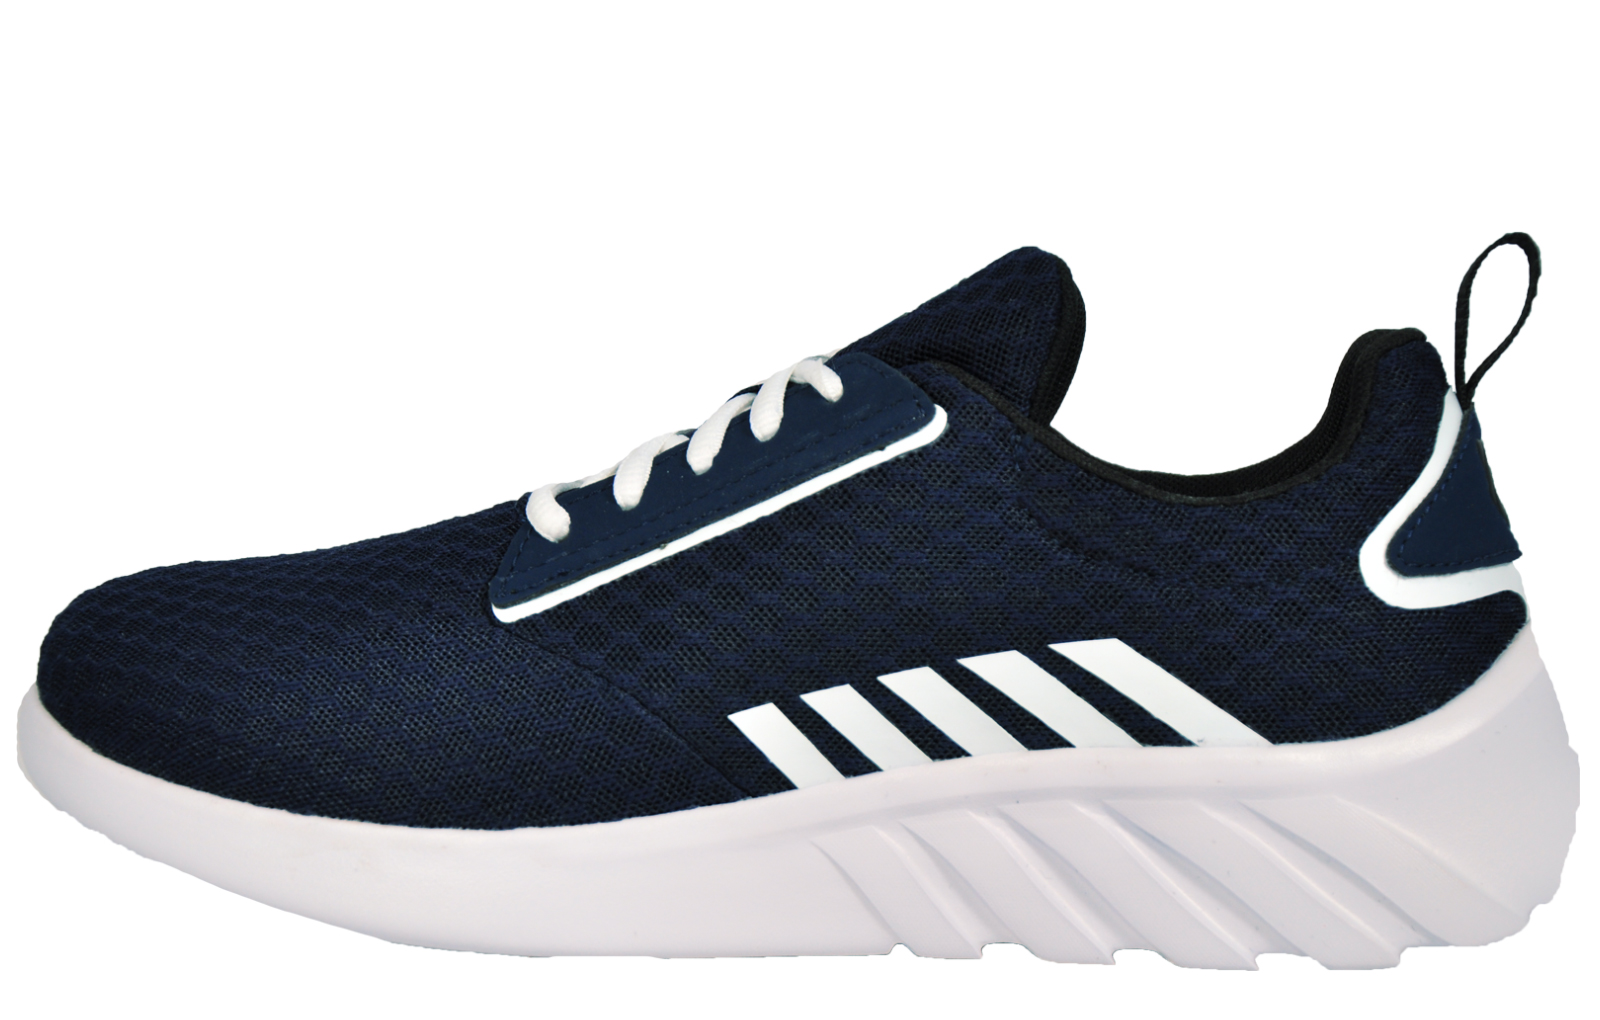 ecc9db4e45612 Cheap Running Shoes | Men's Running Trainers Sale | Express Trainers